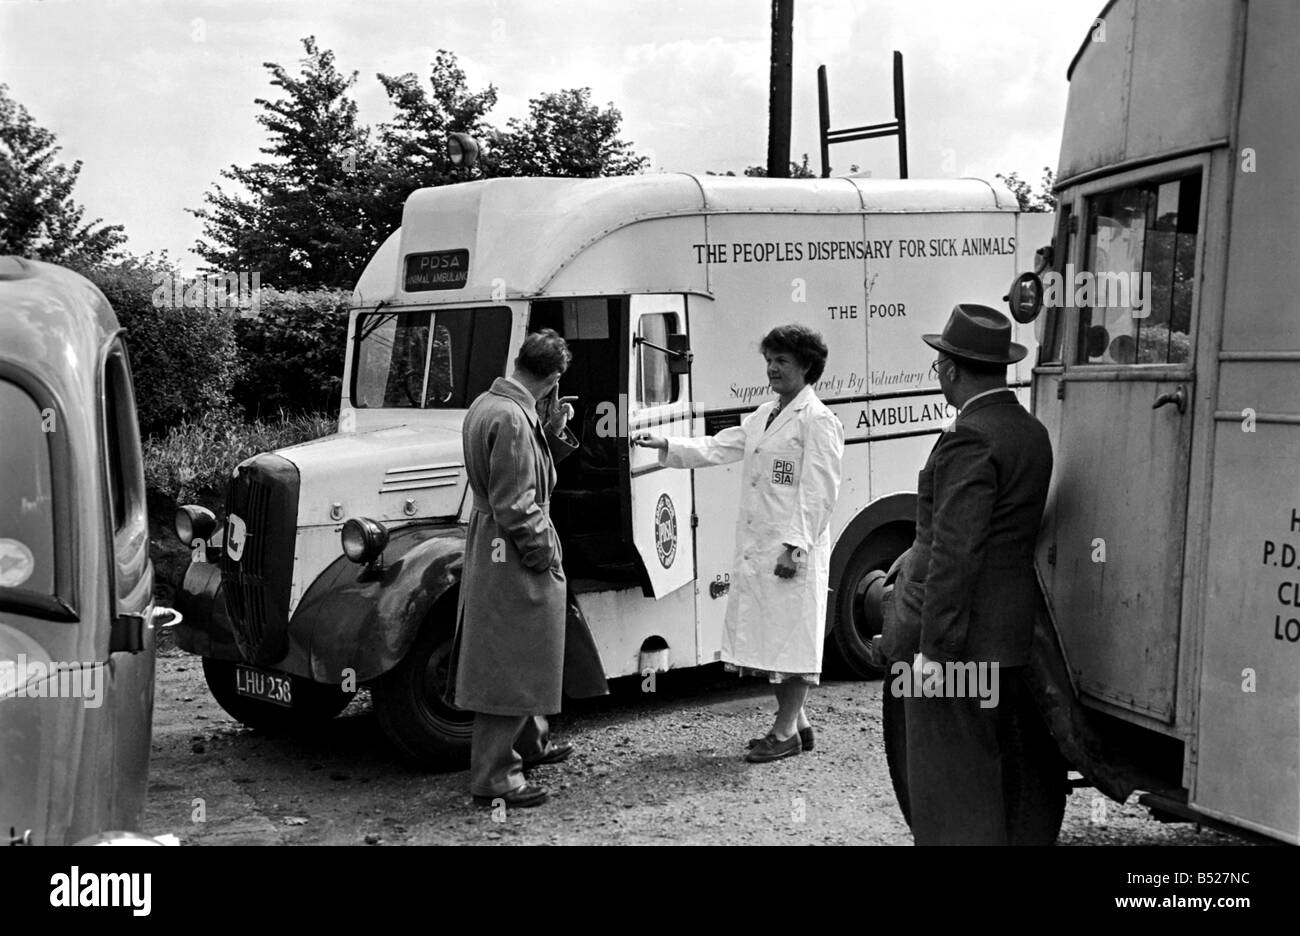 The People's dispensary for sick animals - PDSA Centre. July 1952 C3468 - Stock Image